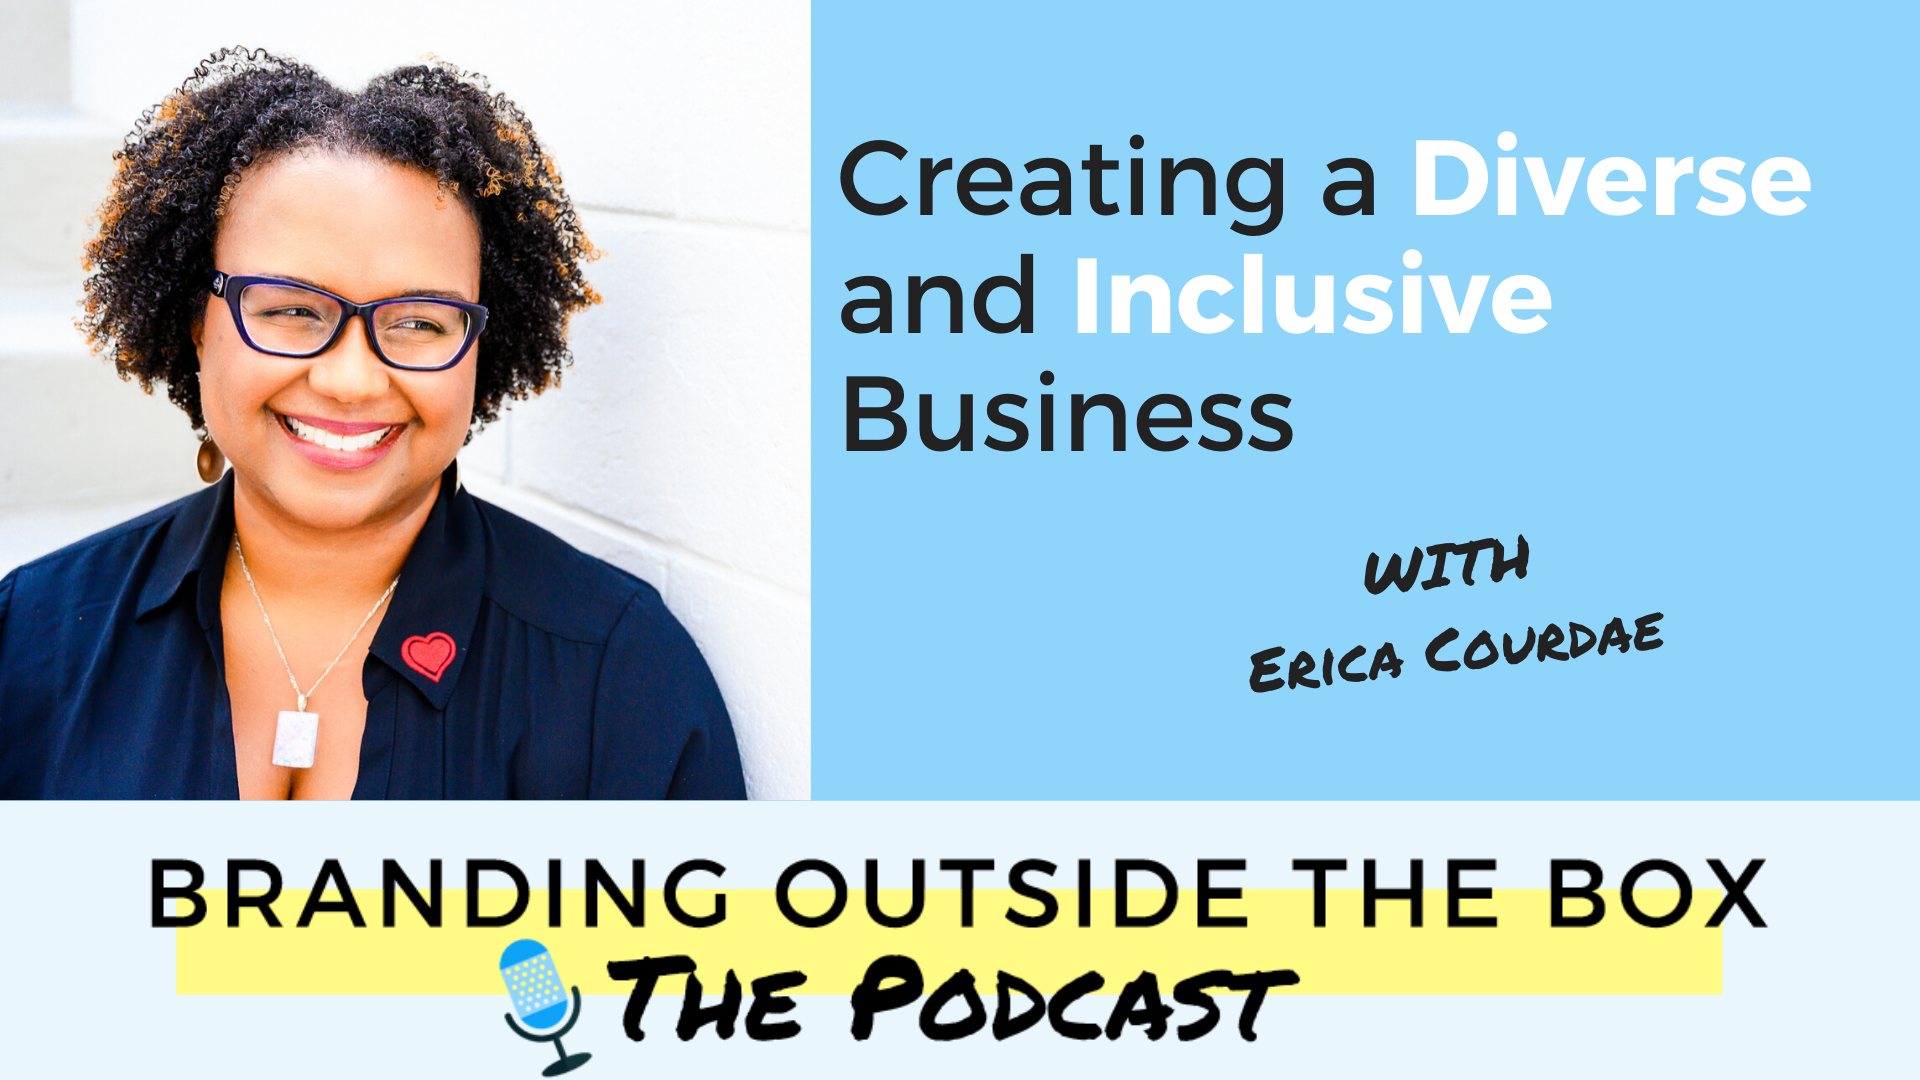 Creating a Diverse and Inclusive Business